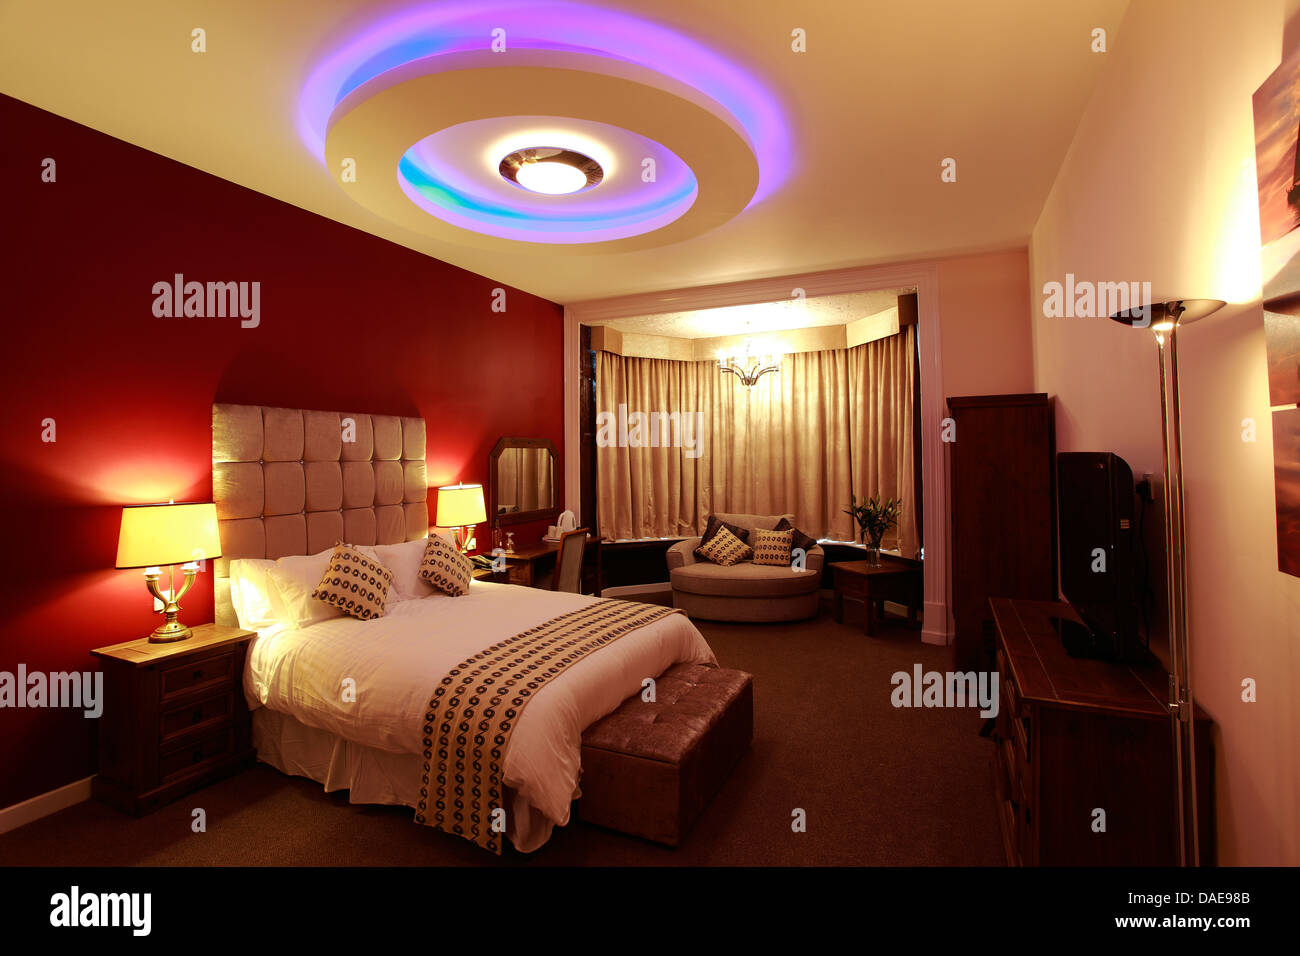 Interior Of A Hotel Bedroom With Ceiling Lights Double Bed And Soft Stock Photo Alamy